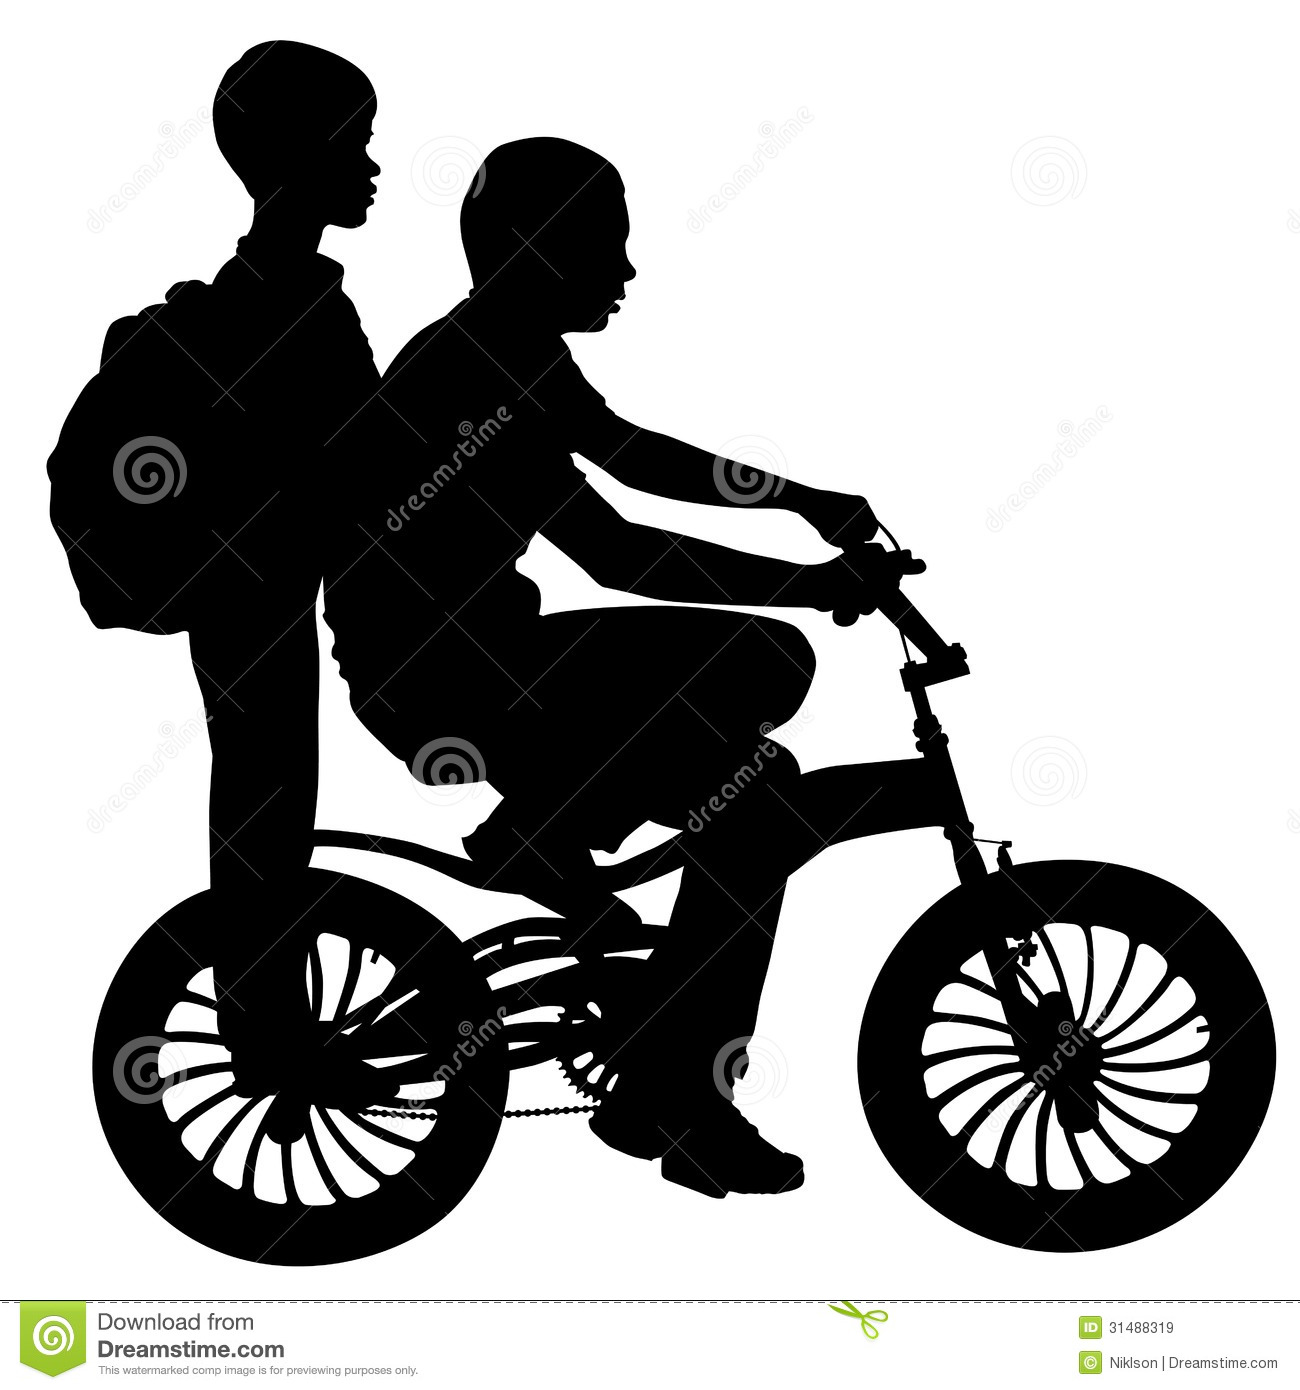 Two boys on a bicycle stock vector. Illustration of ...